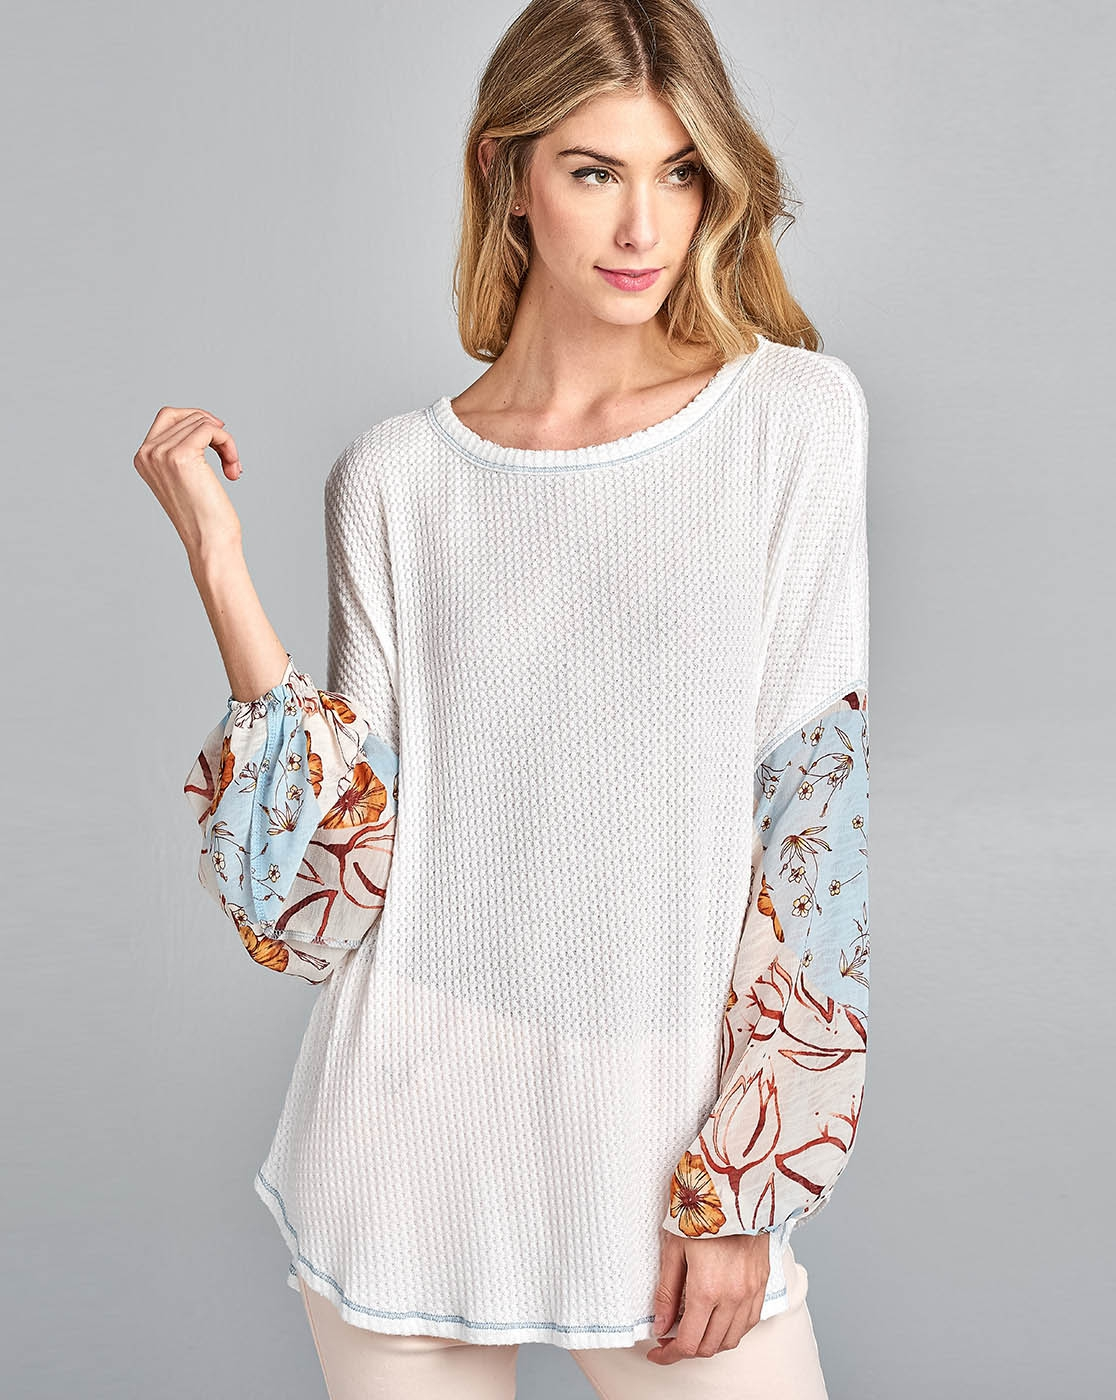 Woven Printed Balloon Sleeve Top - orangeshine.com